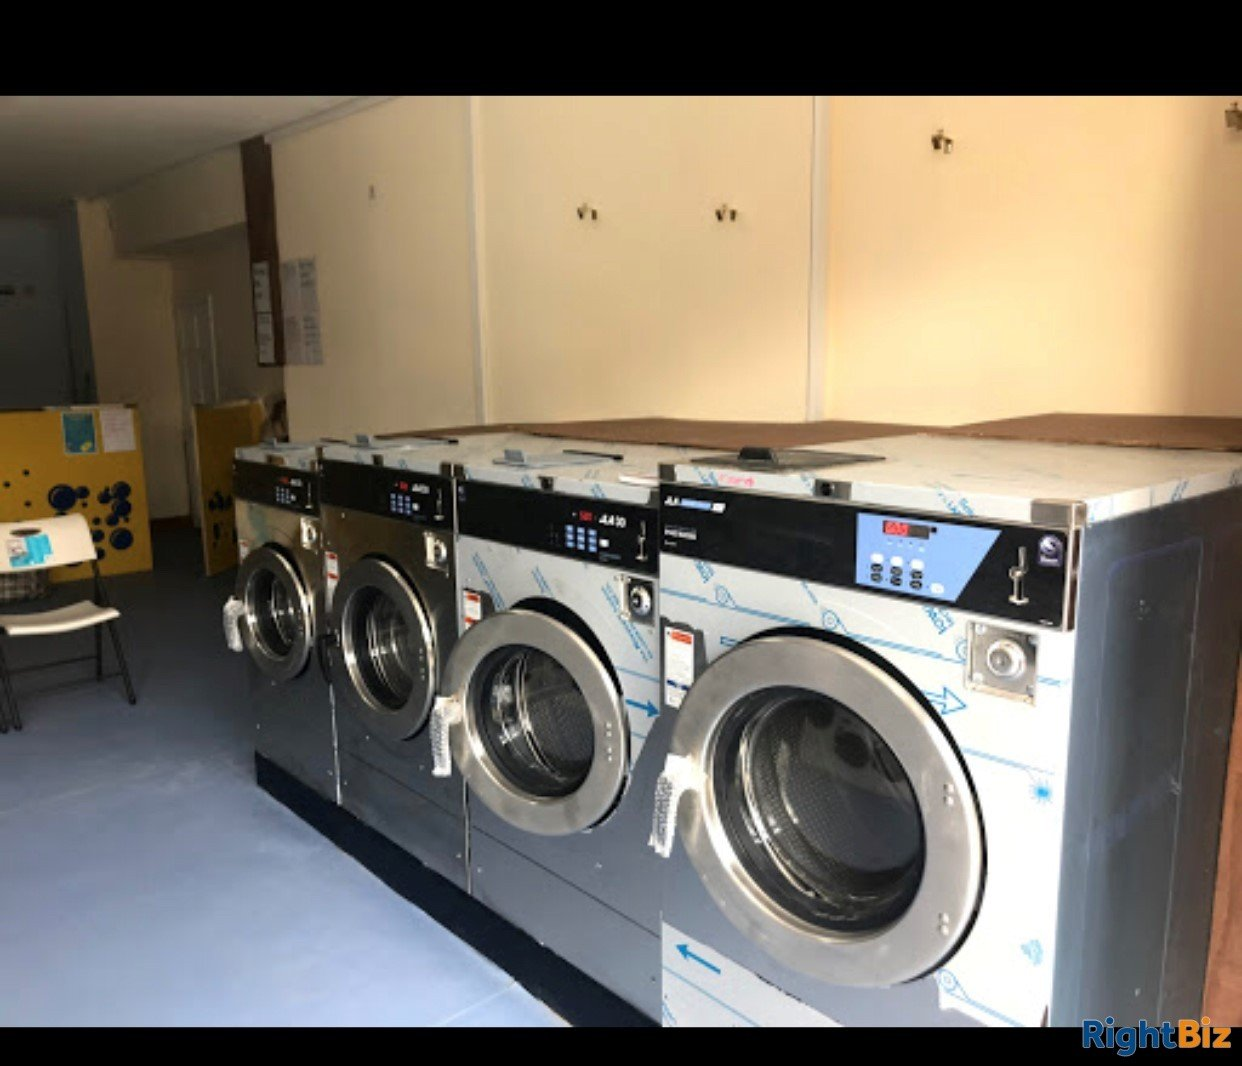 Laundrette for sale. Small business everything new. Prime location!! WF9 2AE. - Image 3